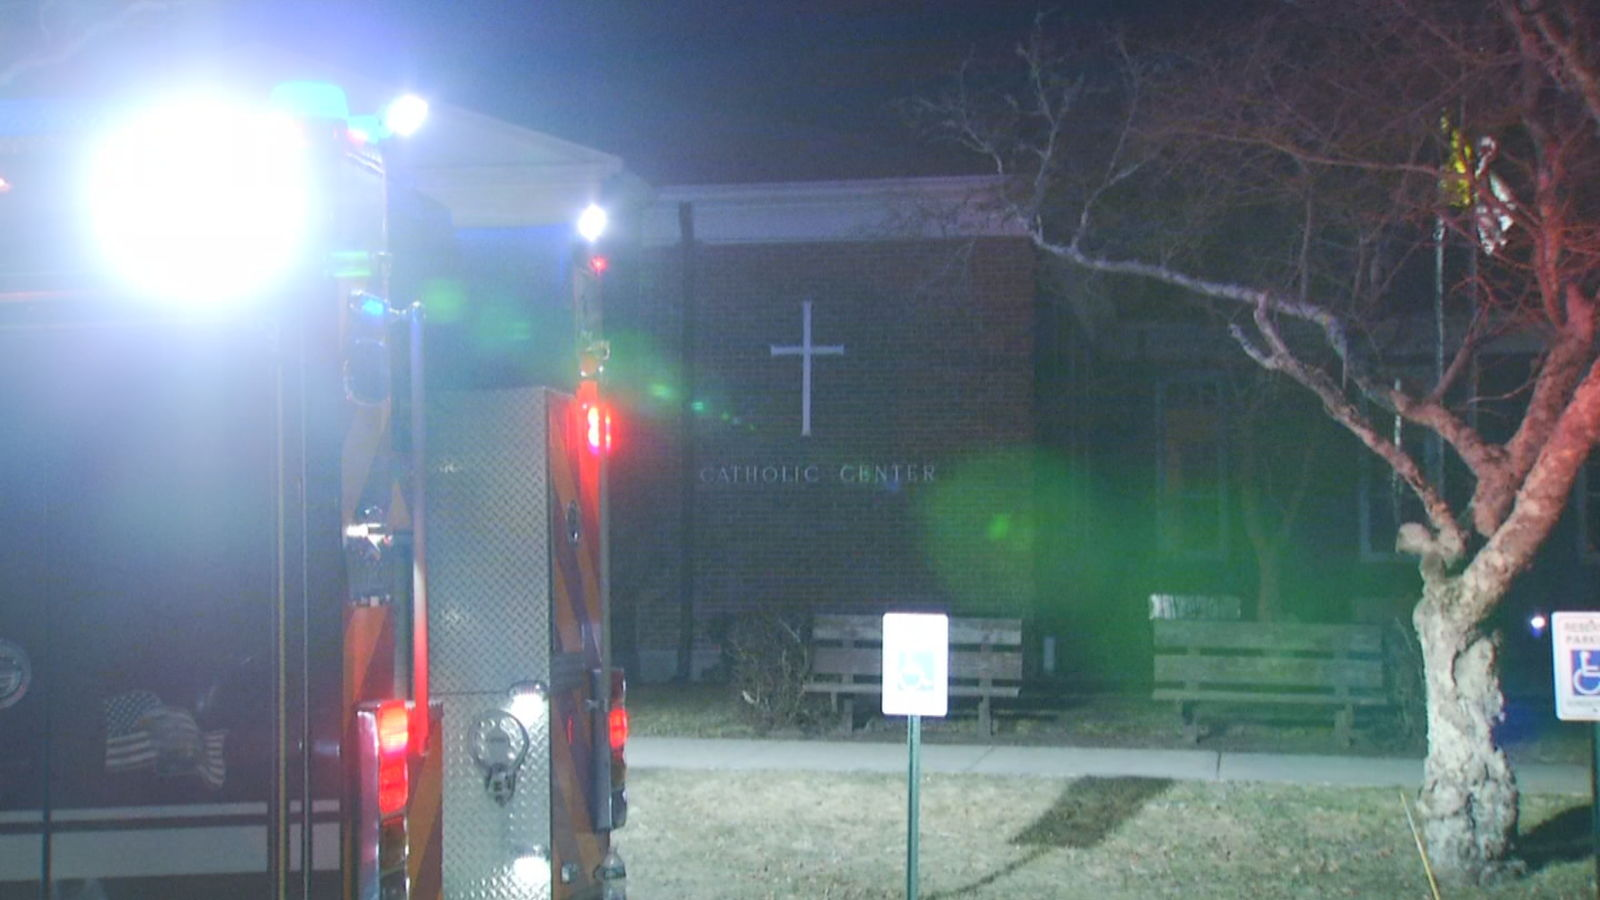 Firefighters respond to St. Basil's Chapel on the Bridgewater State University campus, early Friday, Feb. 21, 2020. (WJAR)